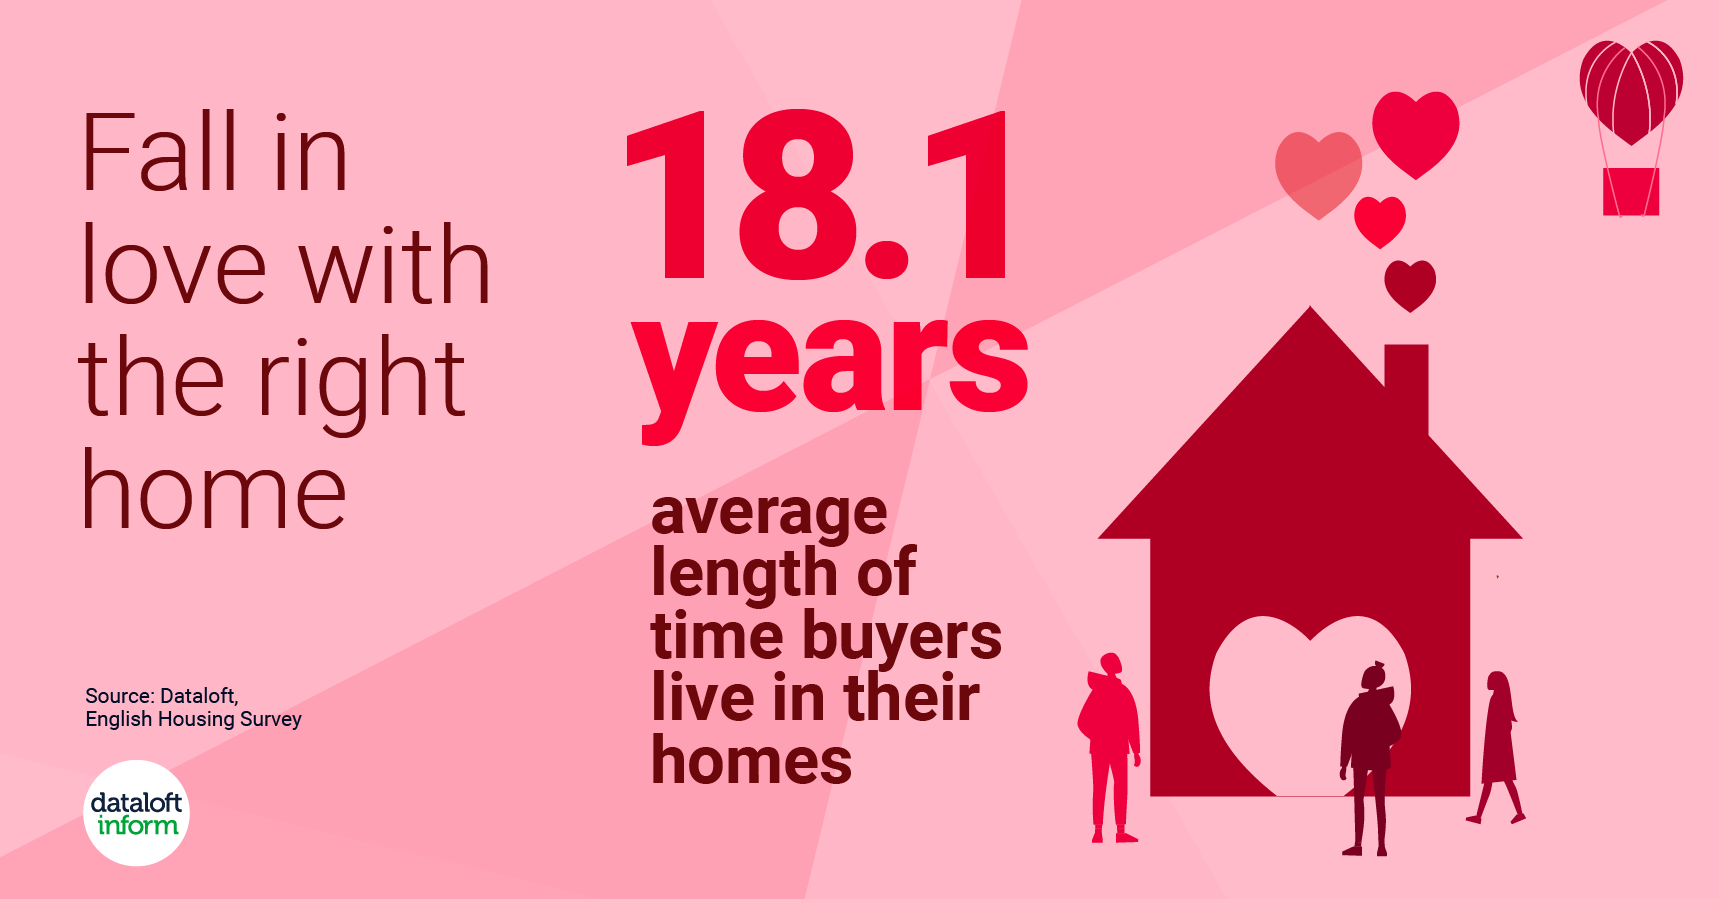 159 Dataloft Valentines 01 - fall in love with the right home